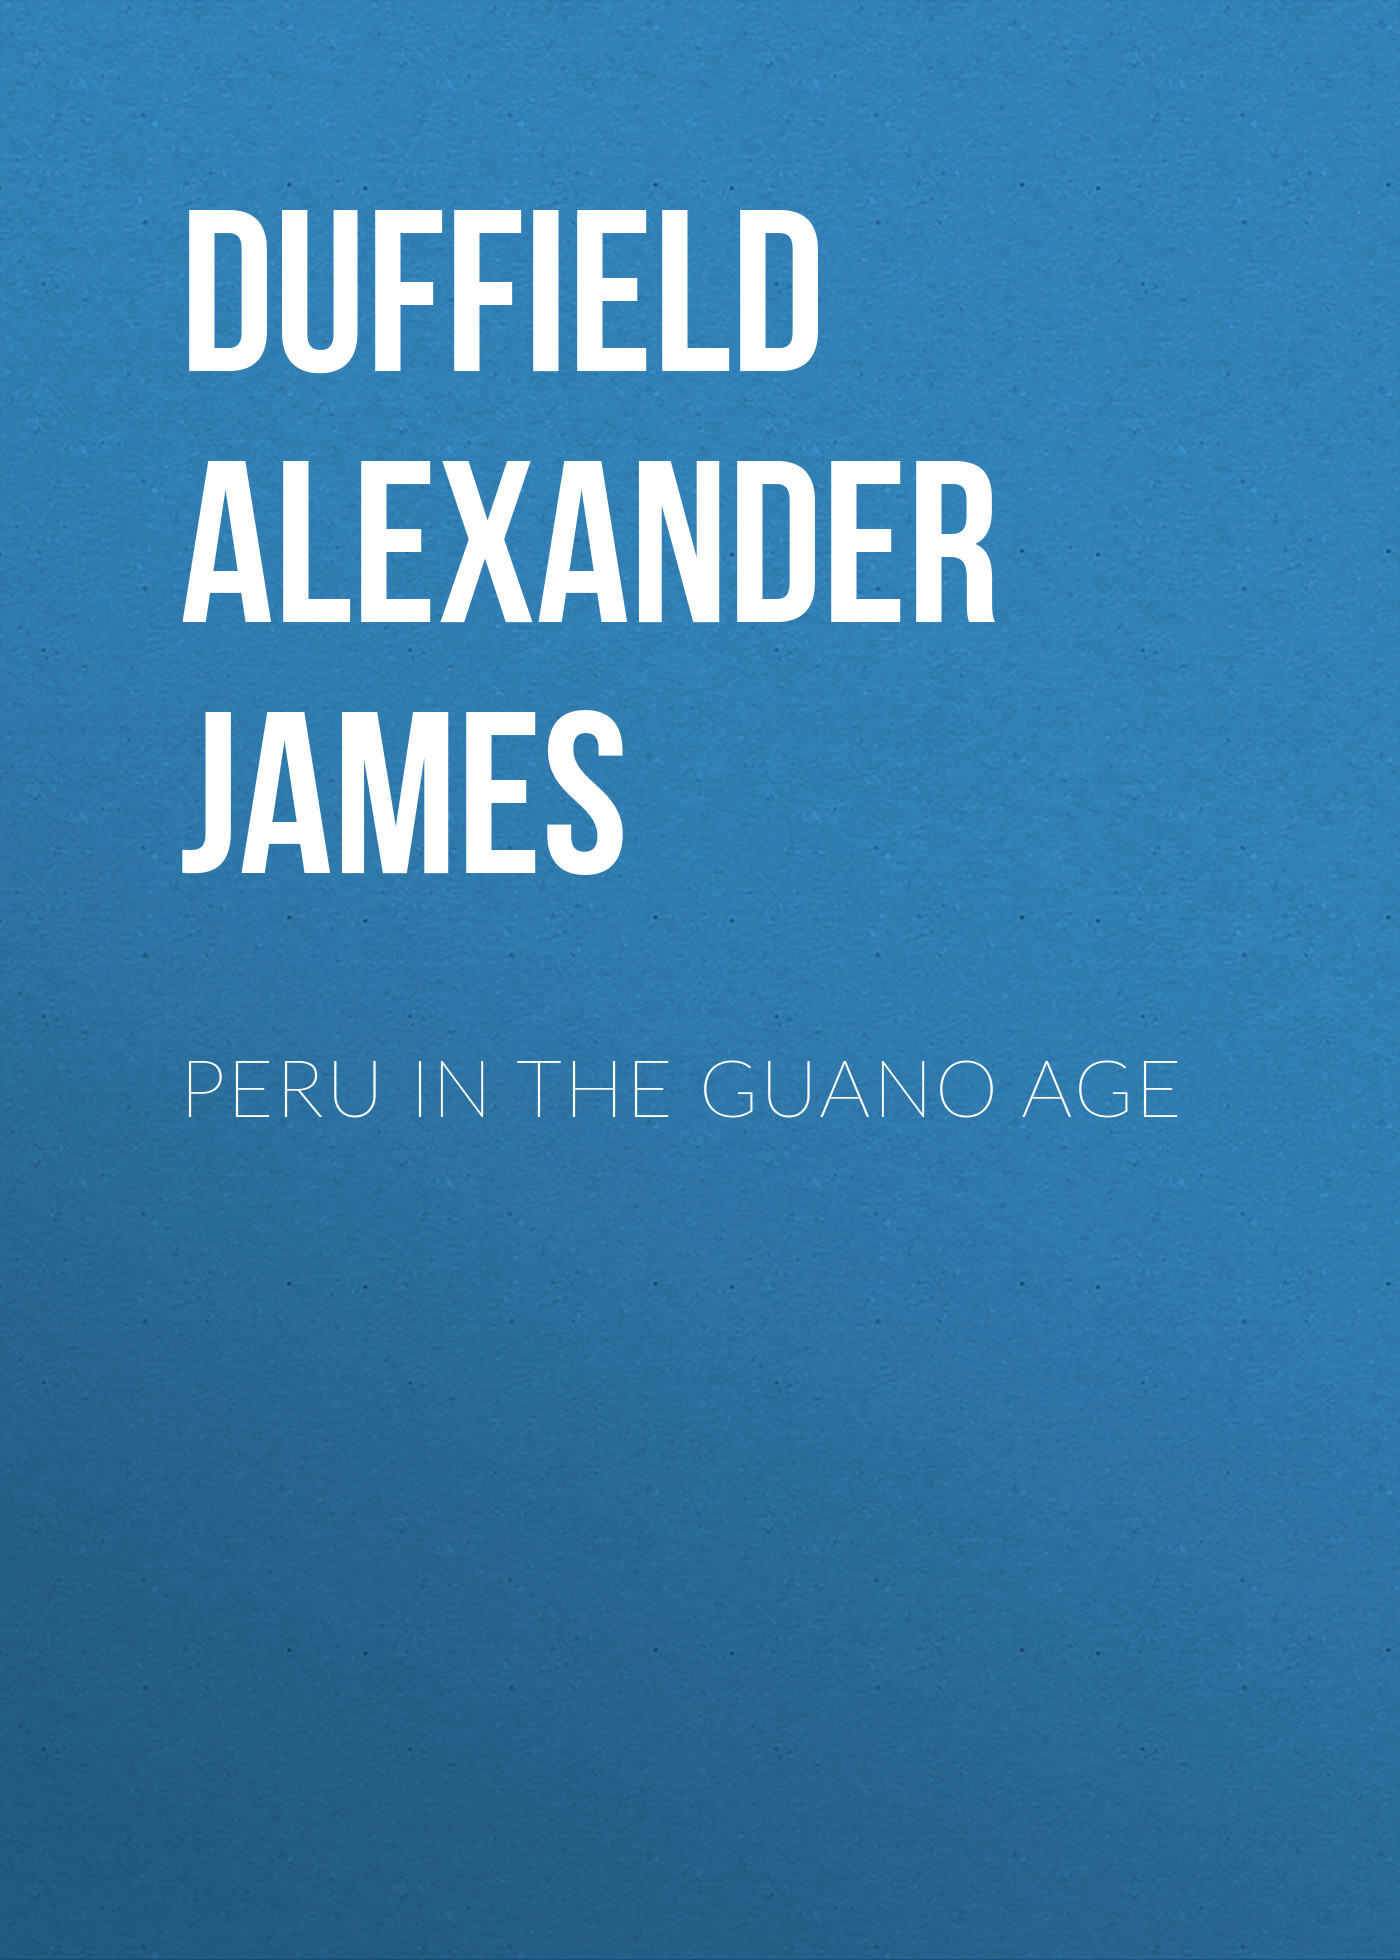 Duffield Alexander James Peru in the Guano Age alexander james waddel patience